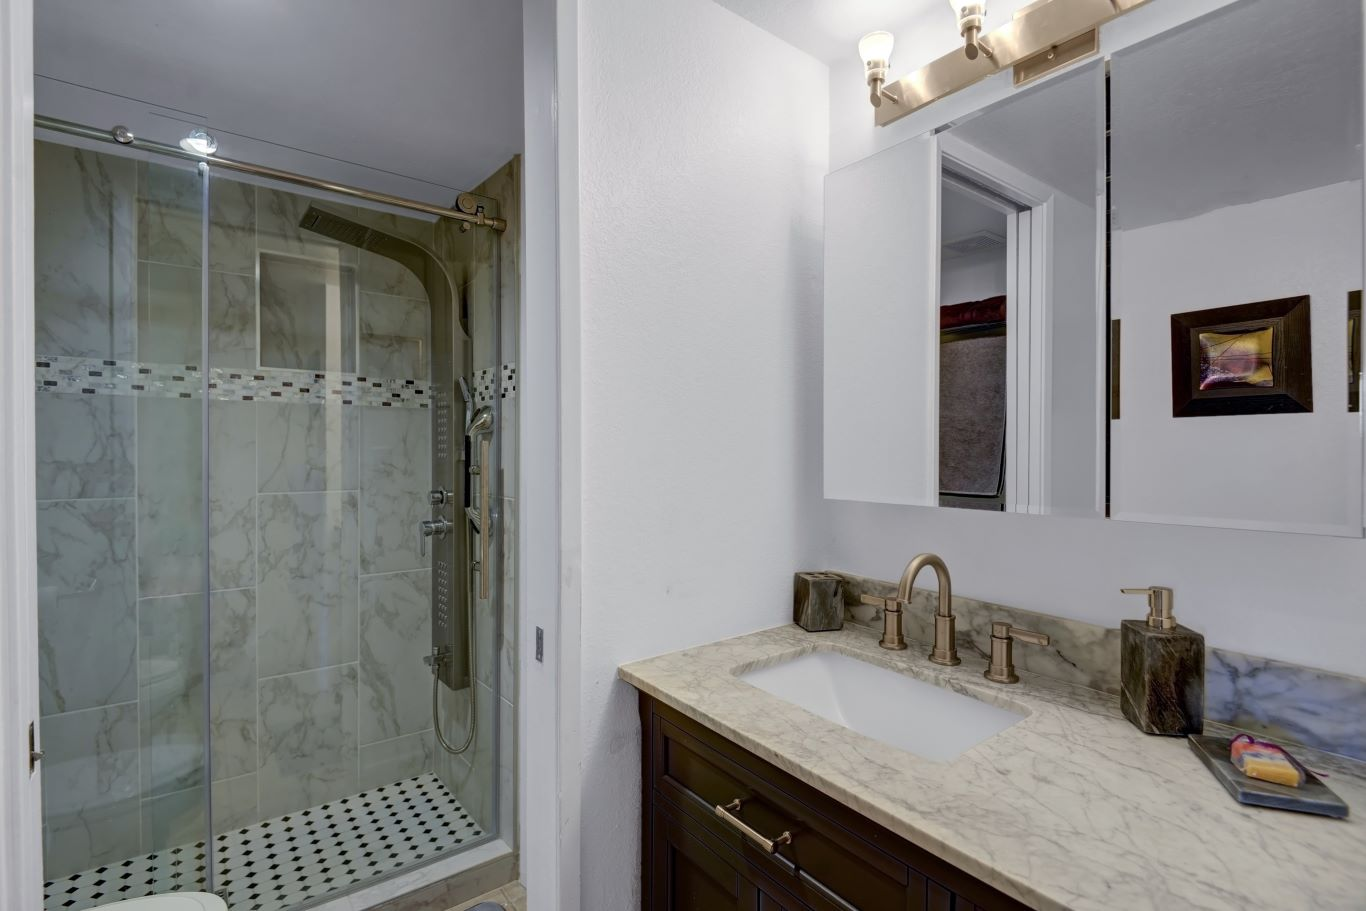 En Suite Master Bathroom Newly Tiled Walk-In Shower with Rainfall Shower Head